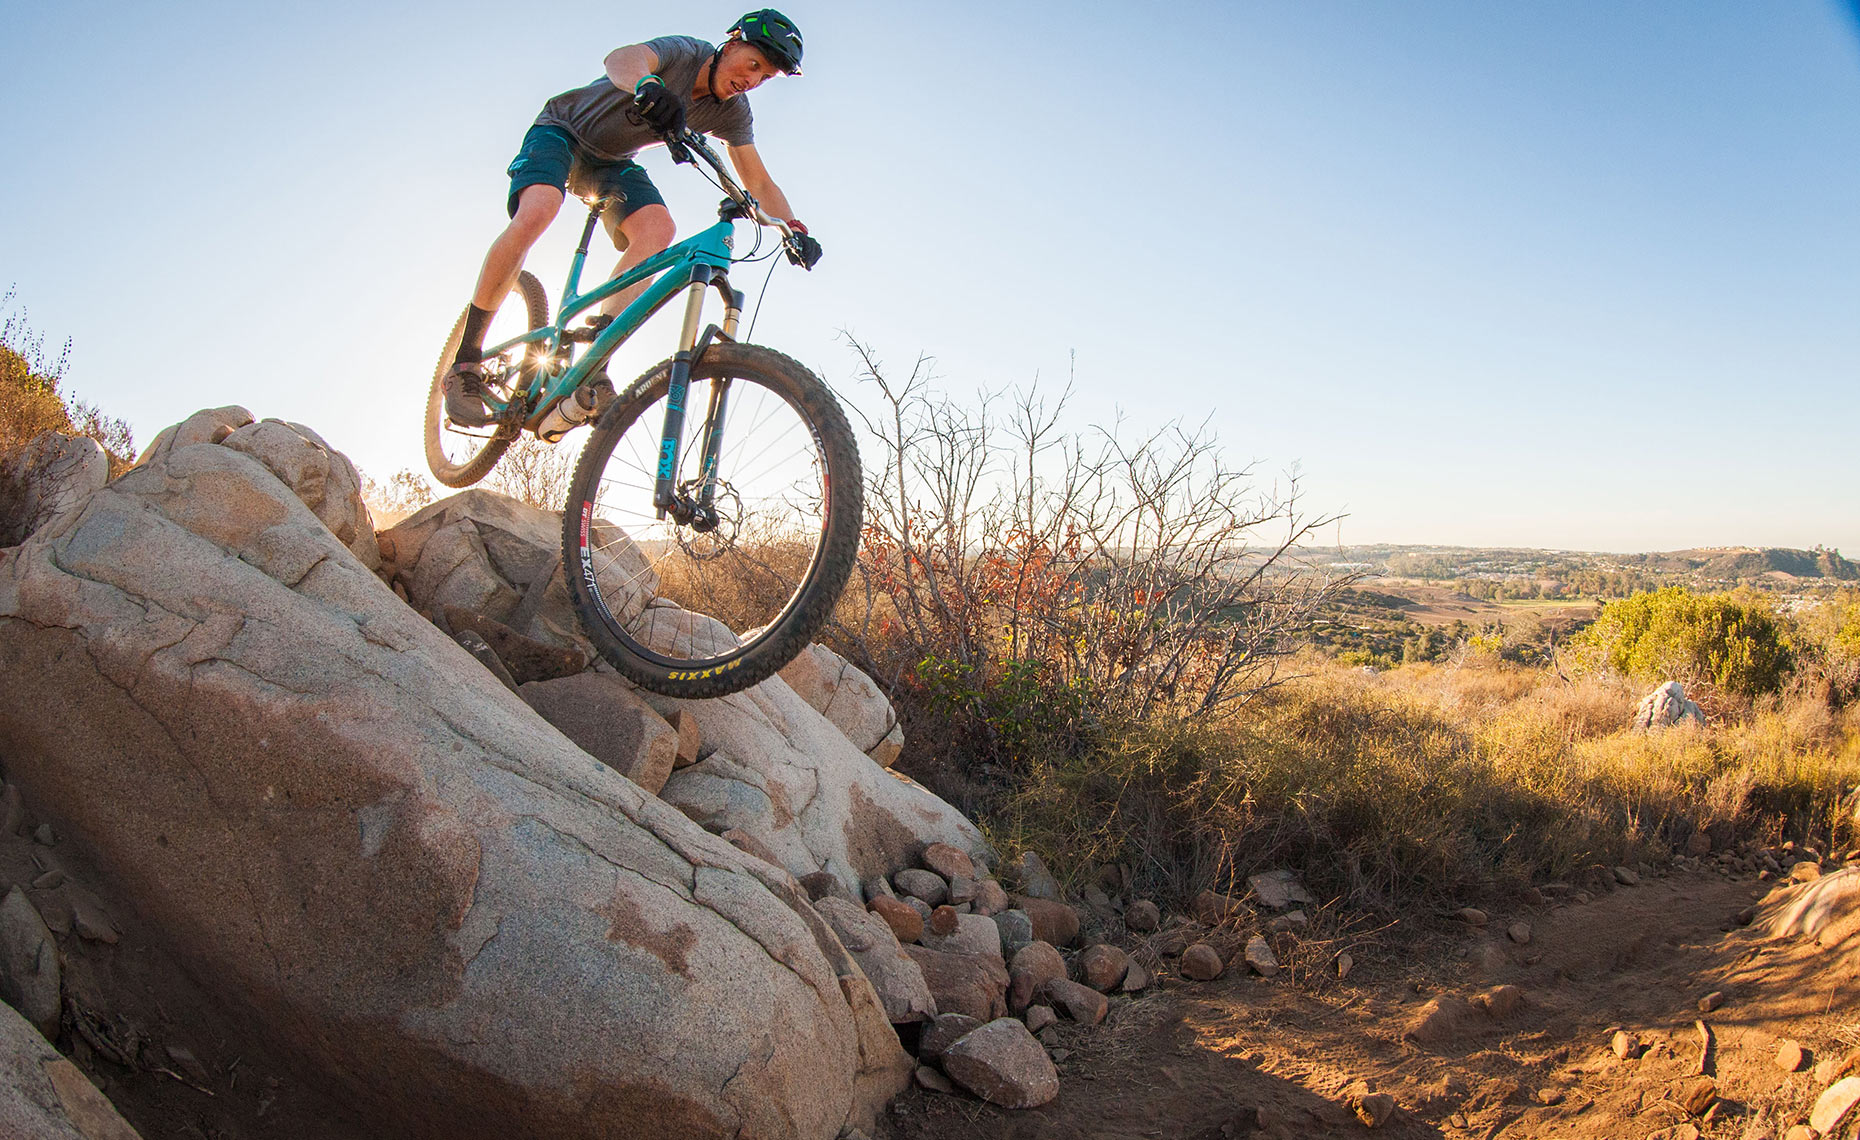 Dillon-Lemarr-Calavaras-Chris-Wellhausen-05